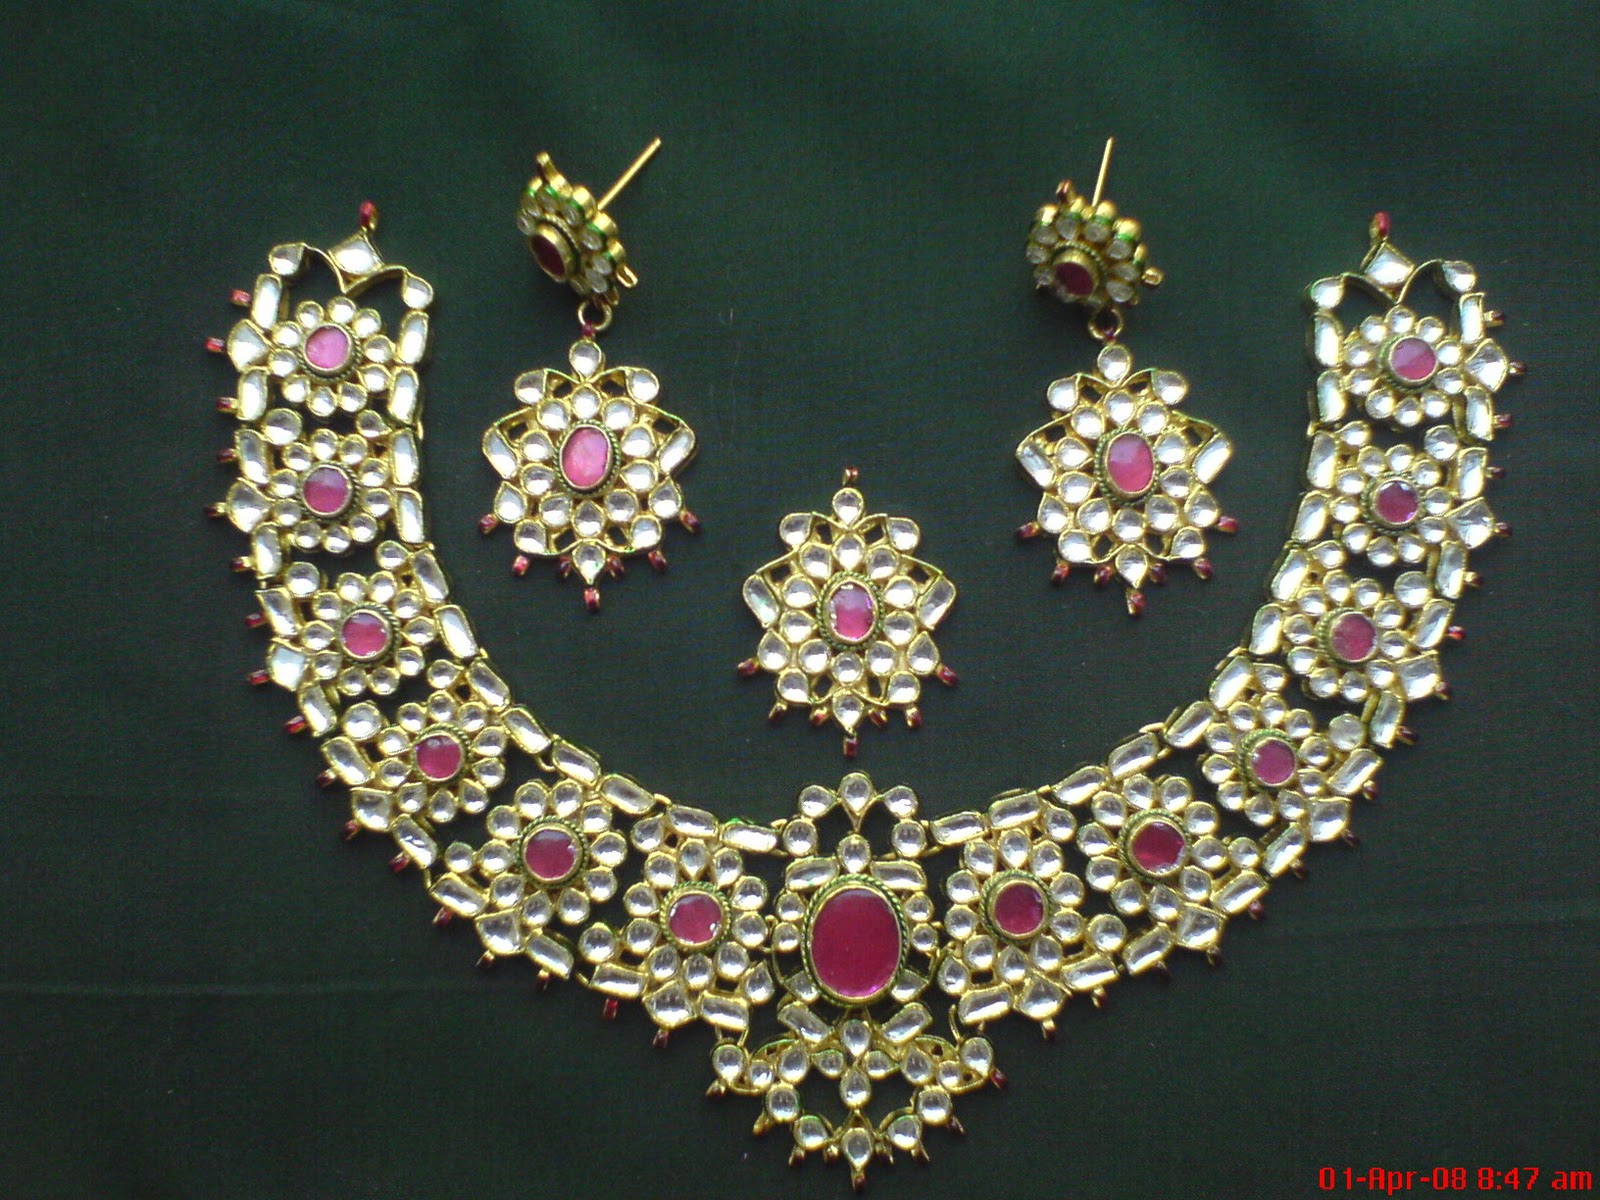 designer jewellery fashion pinterest fkkkfdkdkeooiikkkkkkkkkkkk pin nikah indian jewelry